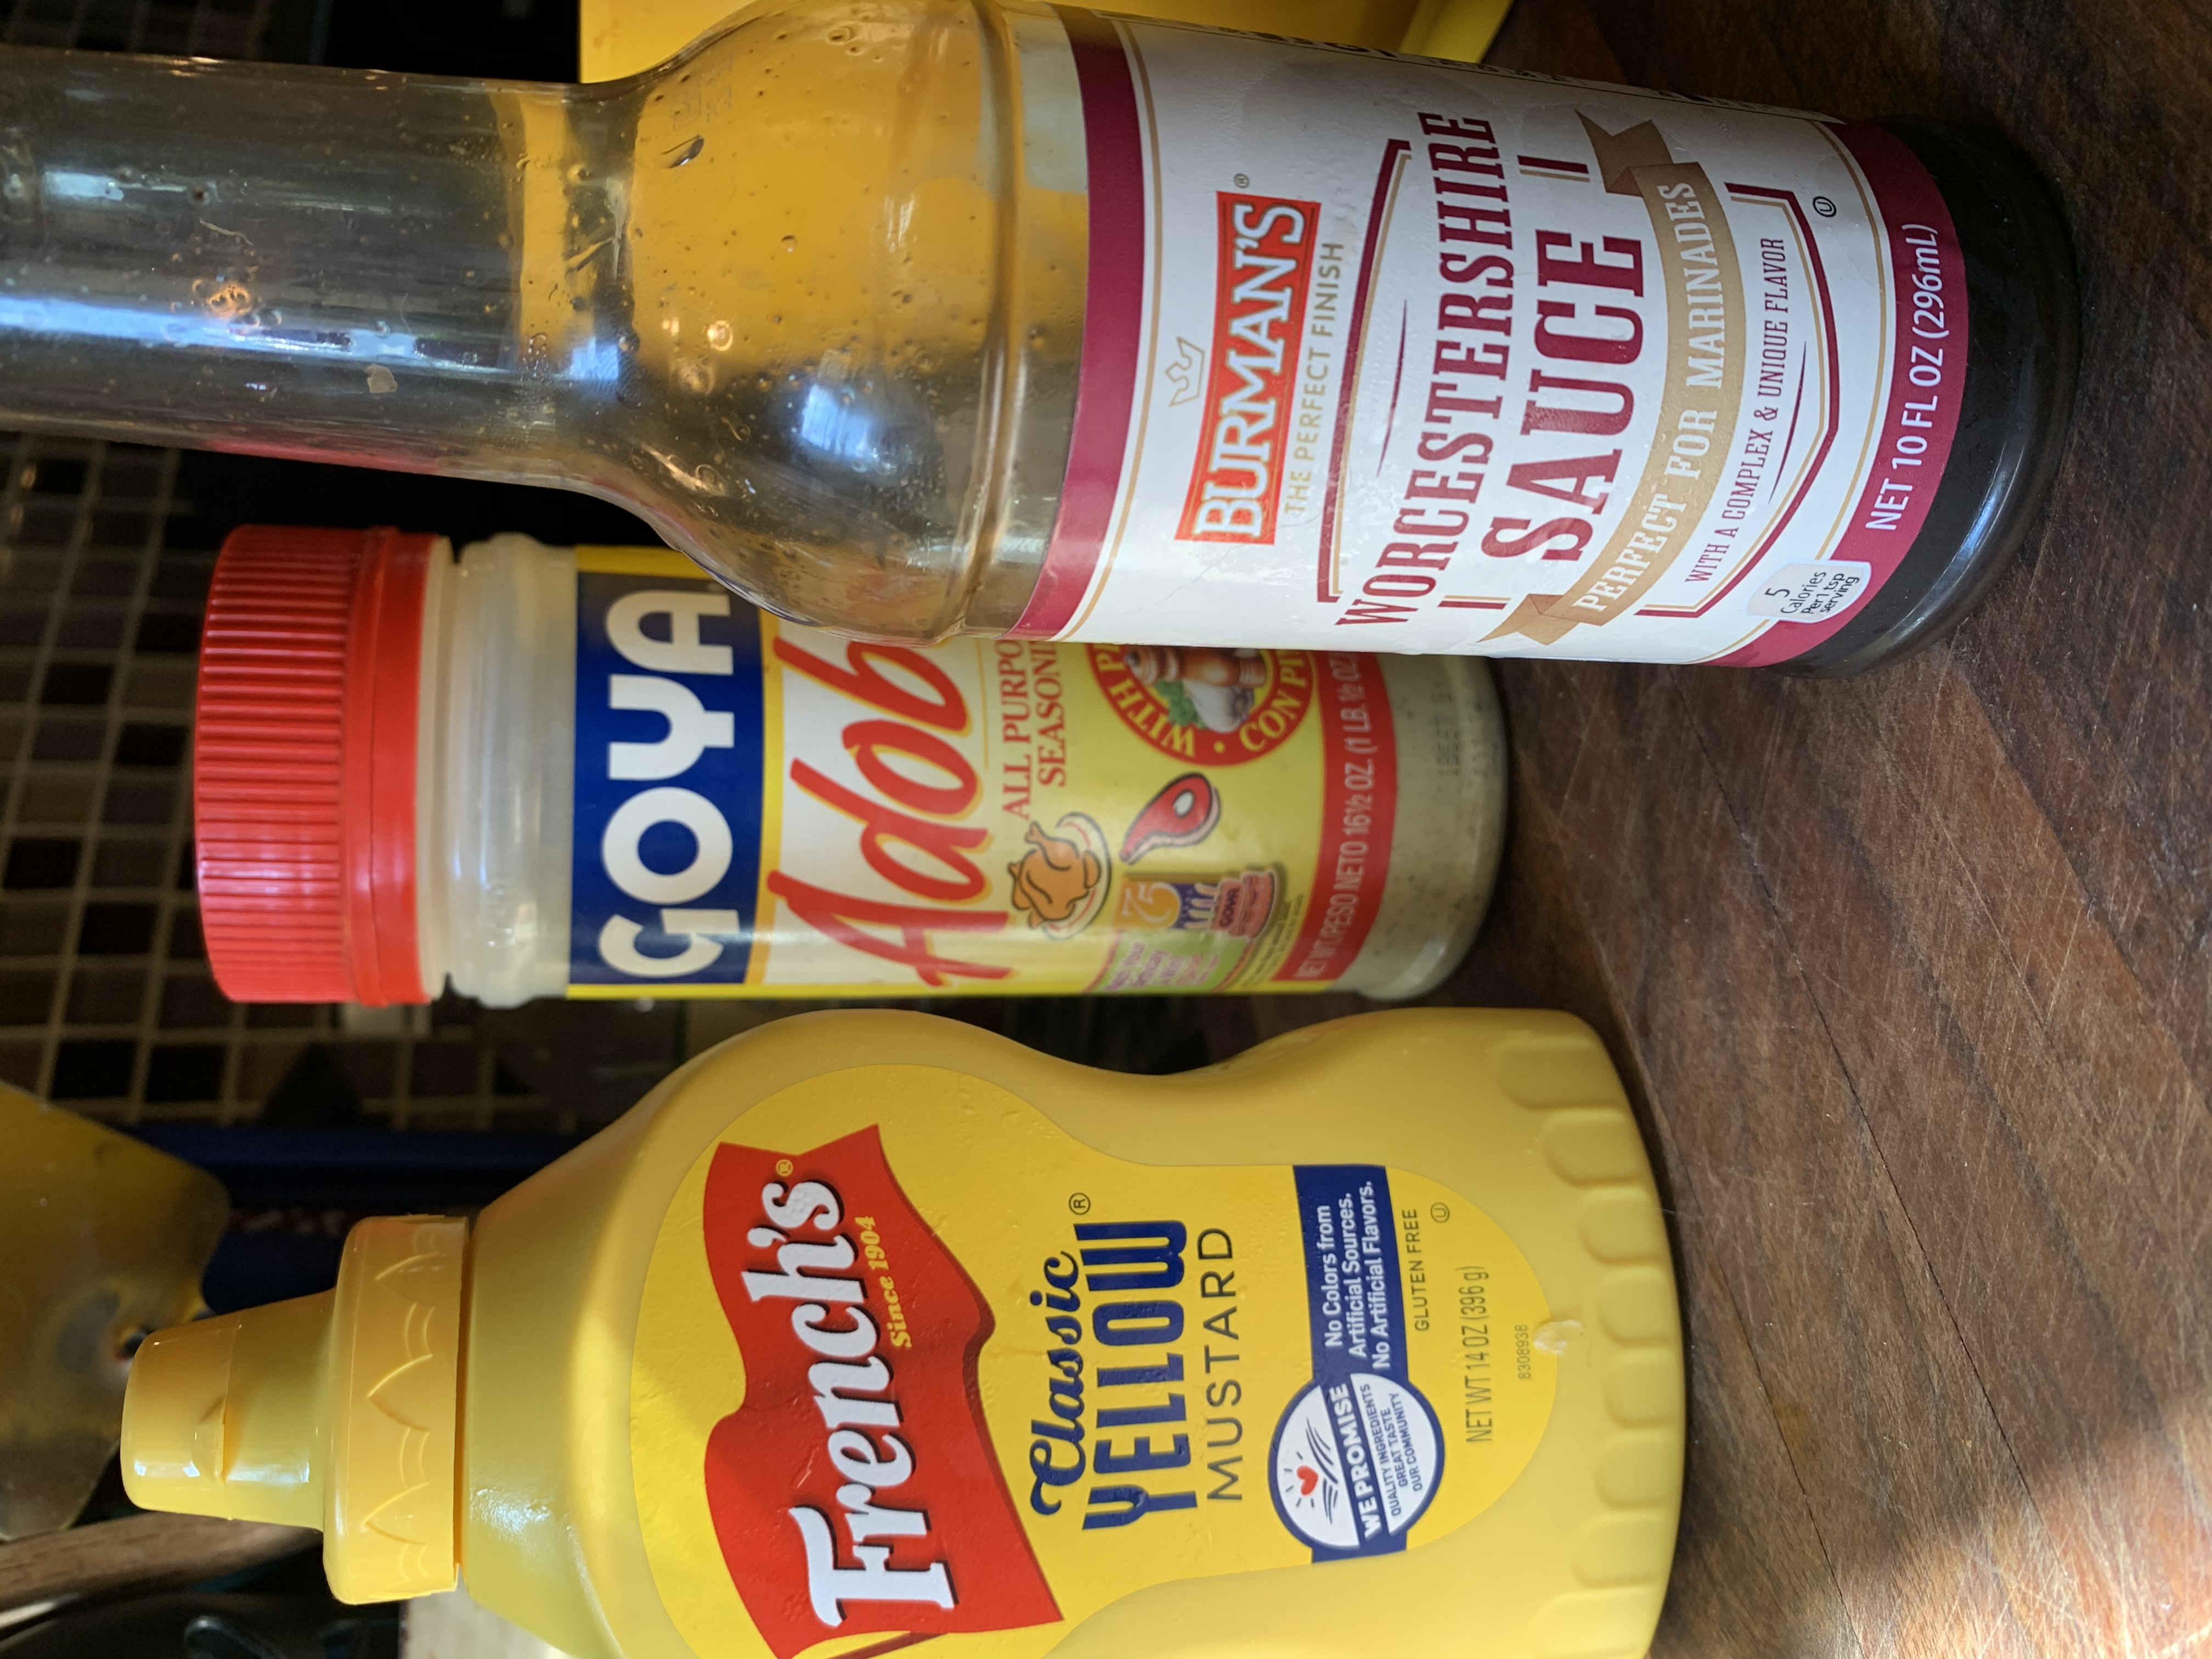 Three bottles containing mustard, Worcestershire sauce and seasoning salt.